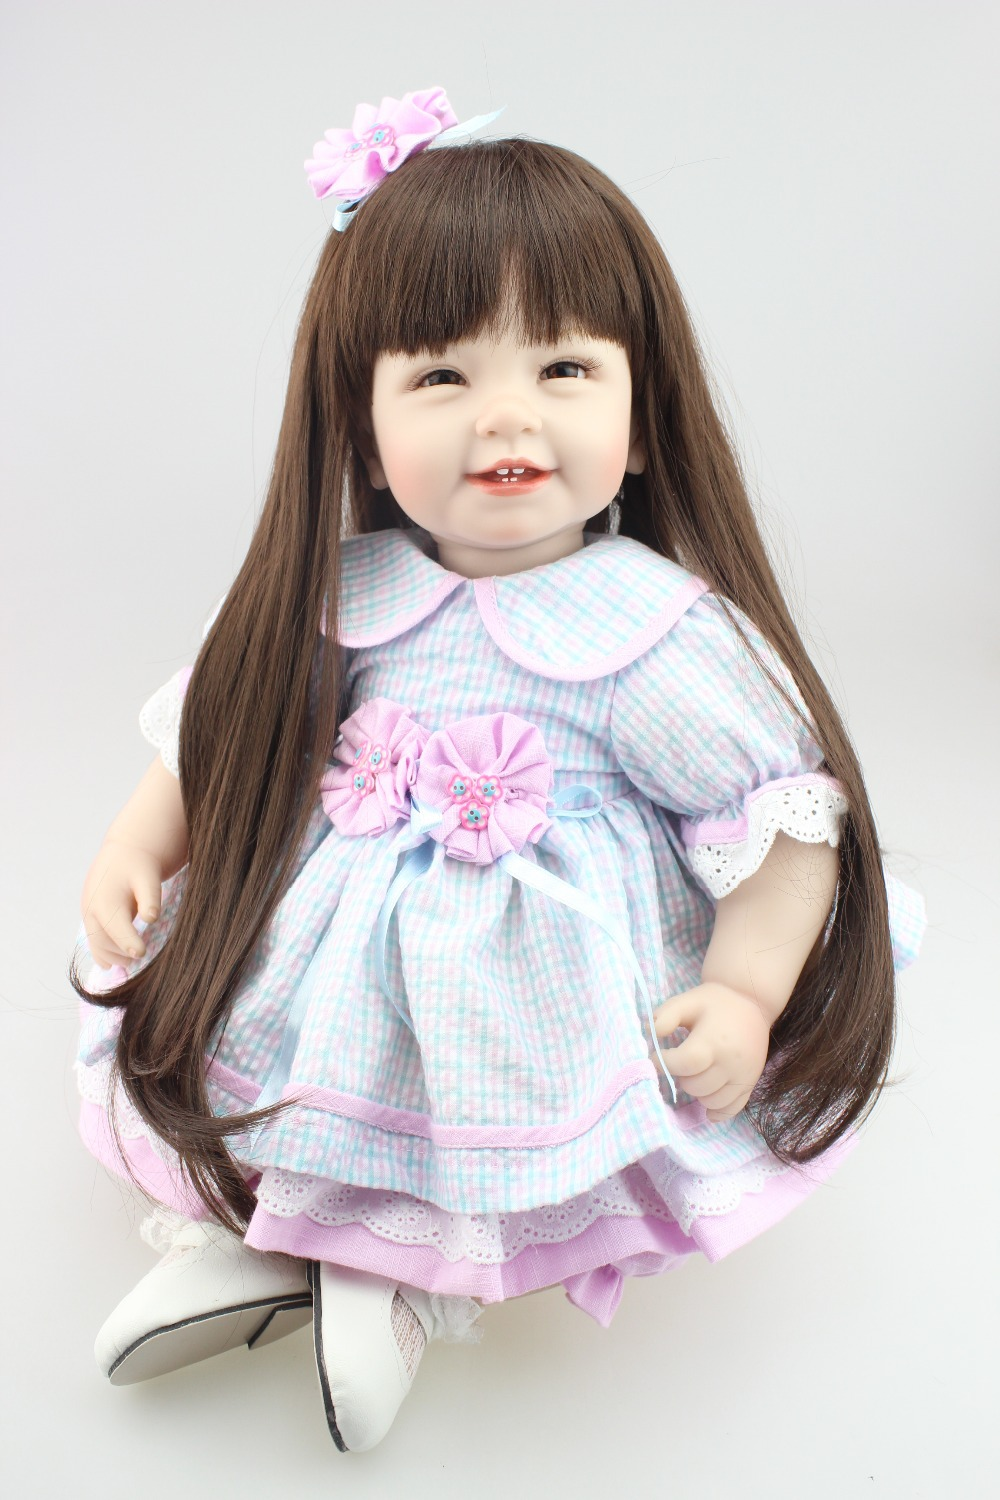 free shipping 55cm NEW design hot sale lifelike reborn todder girl doll wholesale baby dolls fashion doll Christmas gift free shipping 12cm new wooden cartoon candy people european and american wind puppet christmas nutcracker doll child gift